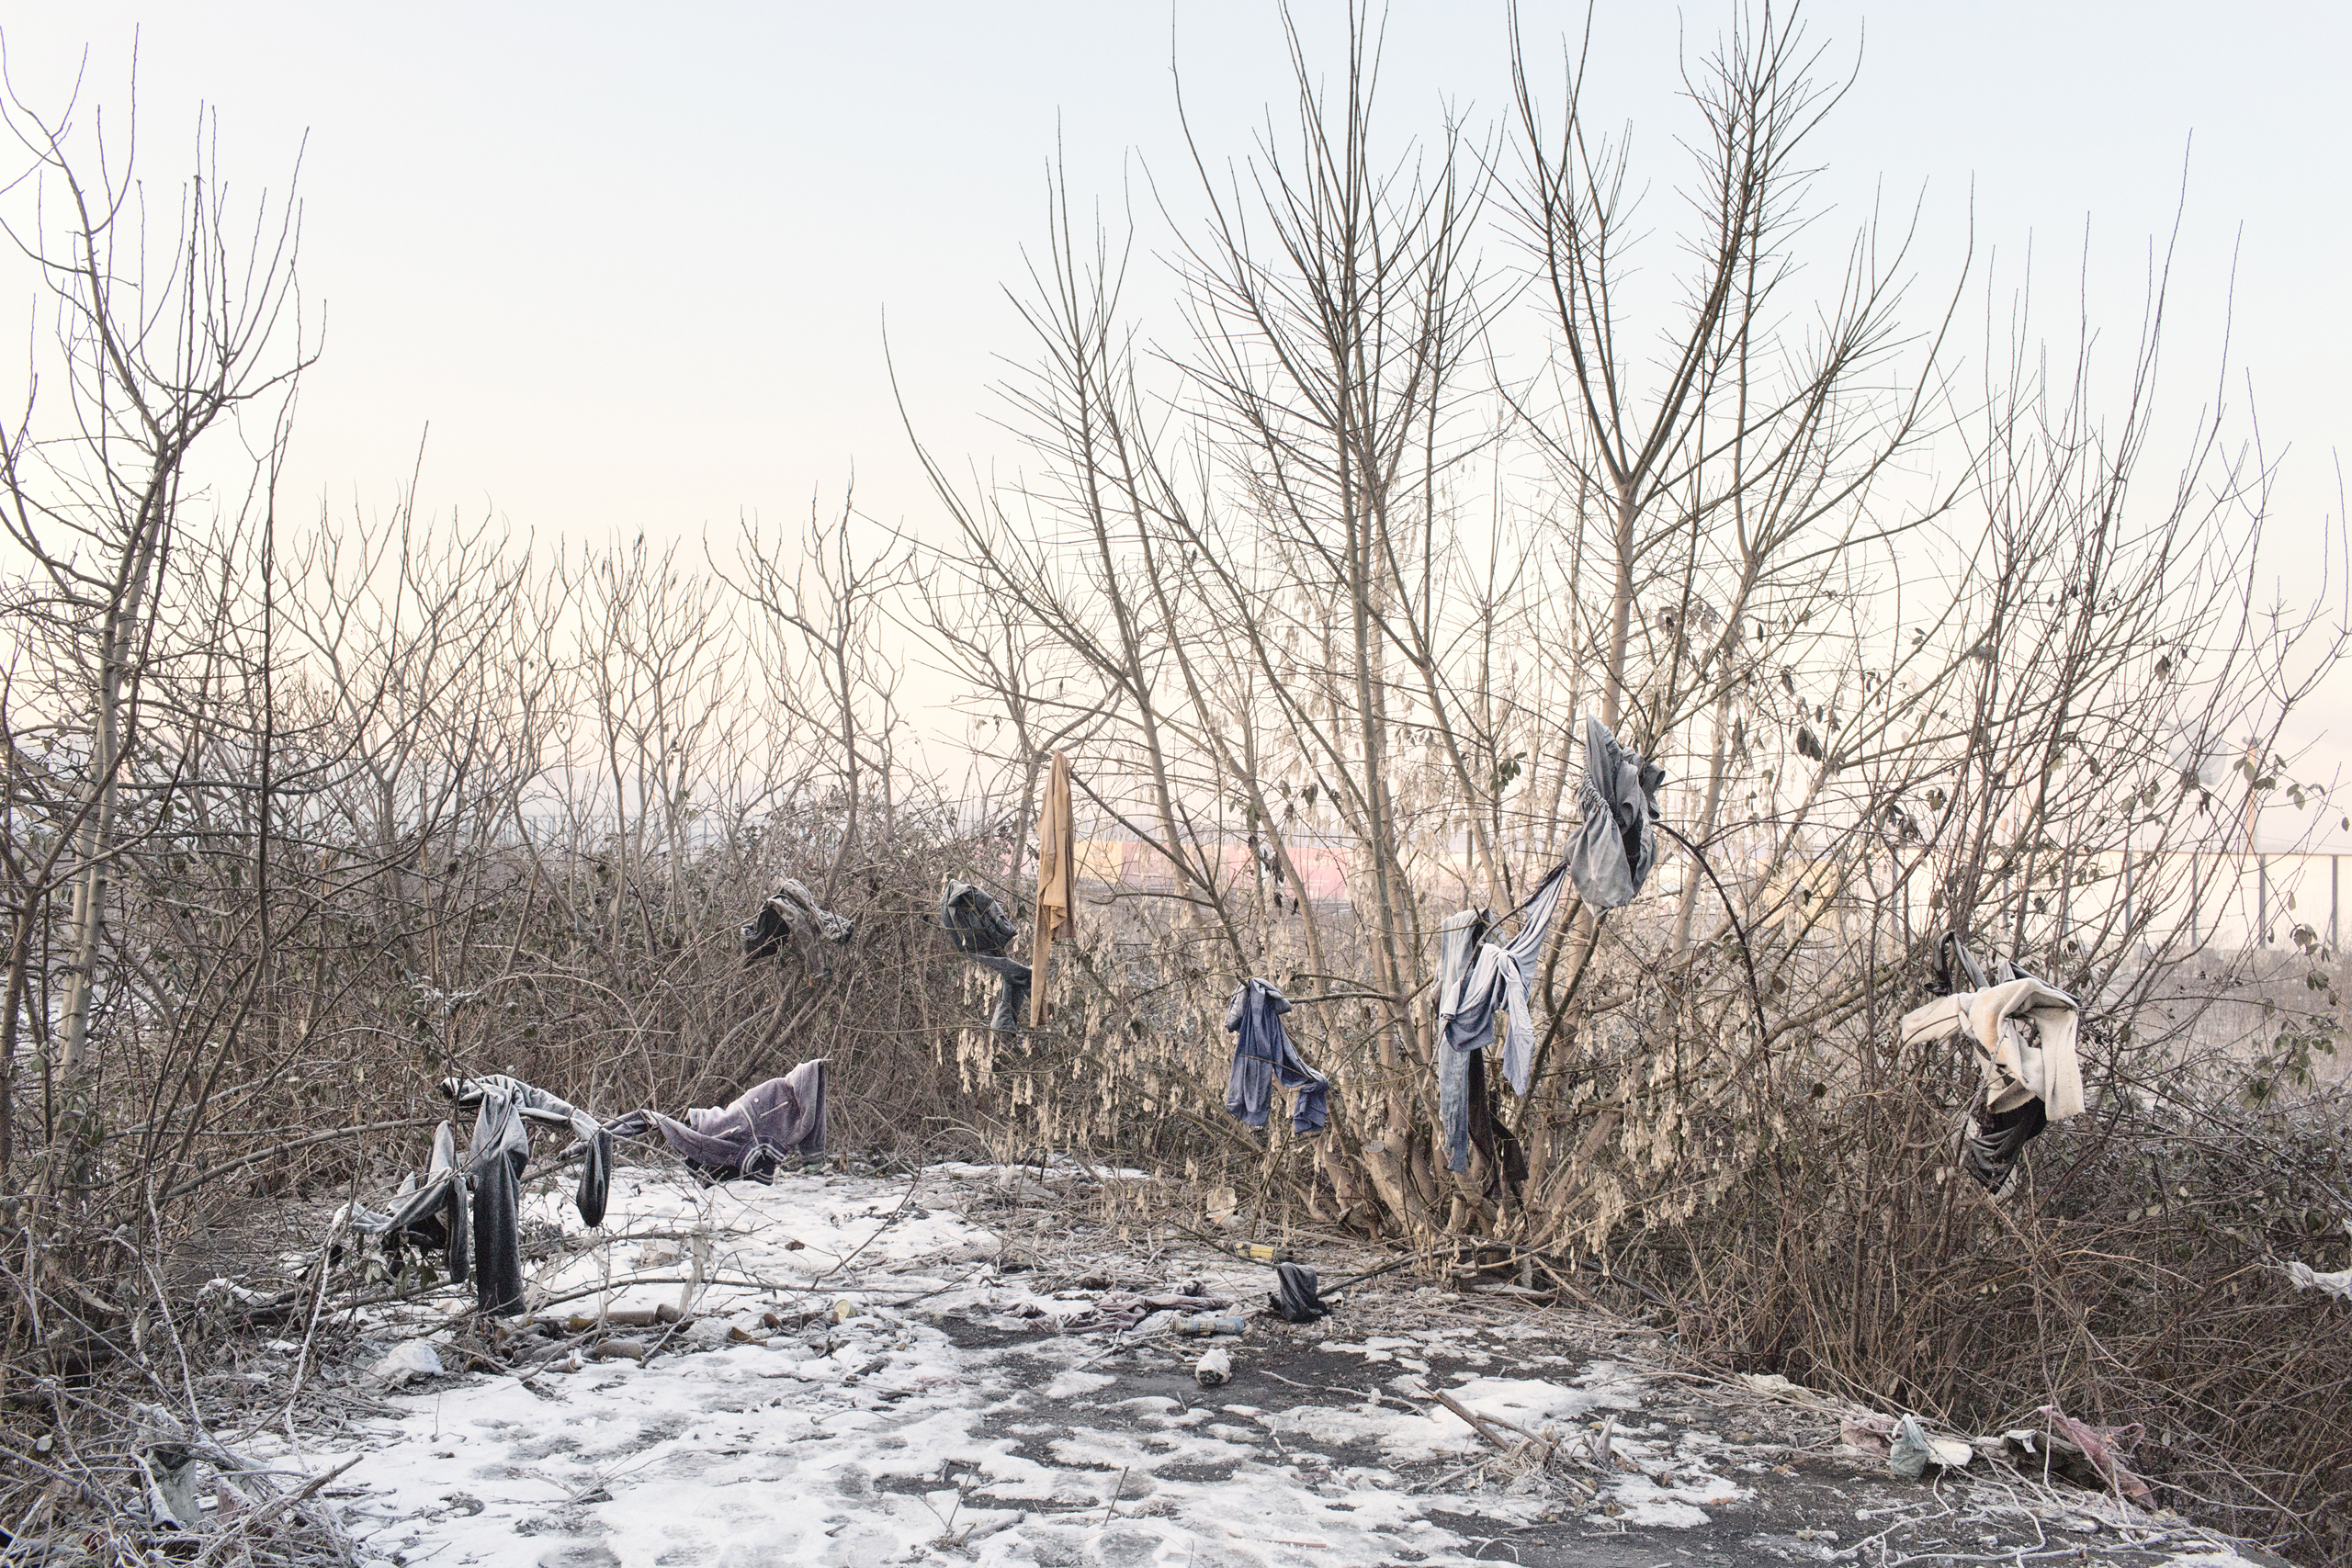 Clothes, frozen from the cold, are left on trees by migrants living in terrible conditions in abandoned buildings near the train station, Belgrade, Serbia,  Jan 15, 2017.